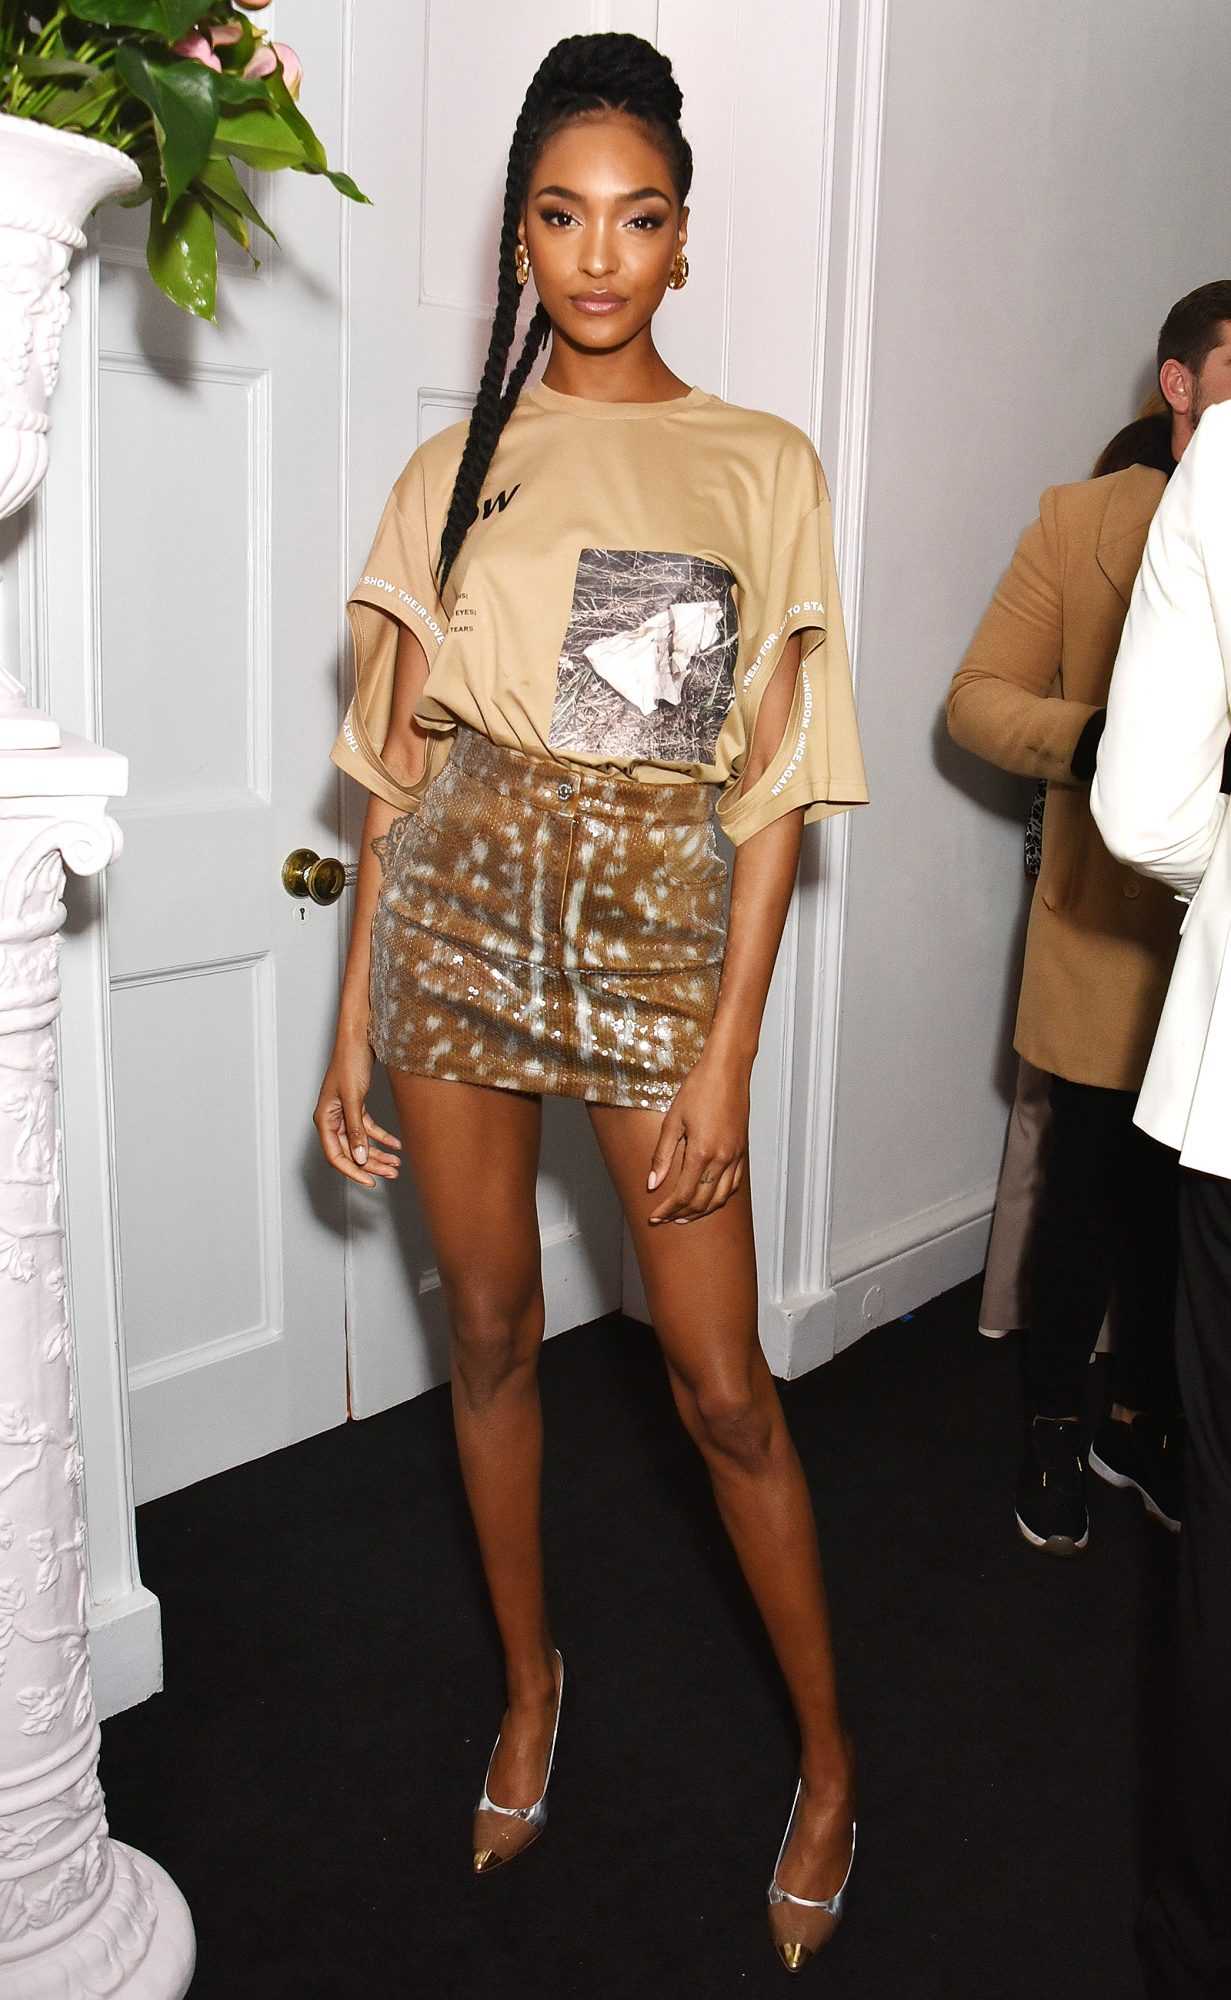 Cara's Delevingne Burberry 'Her' House Party